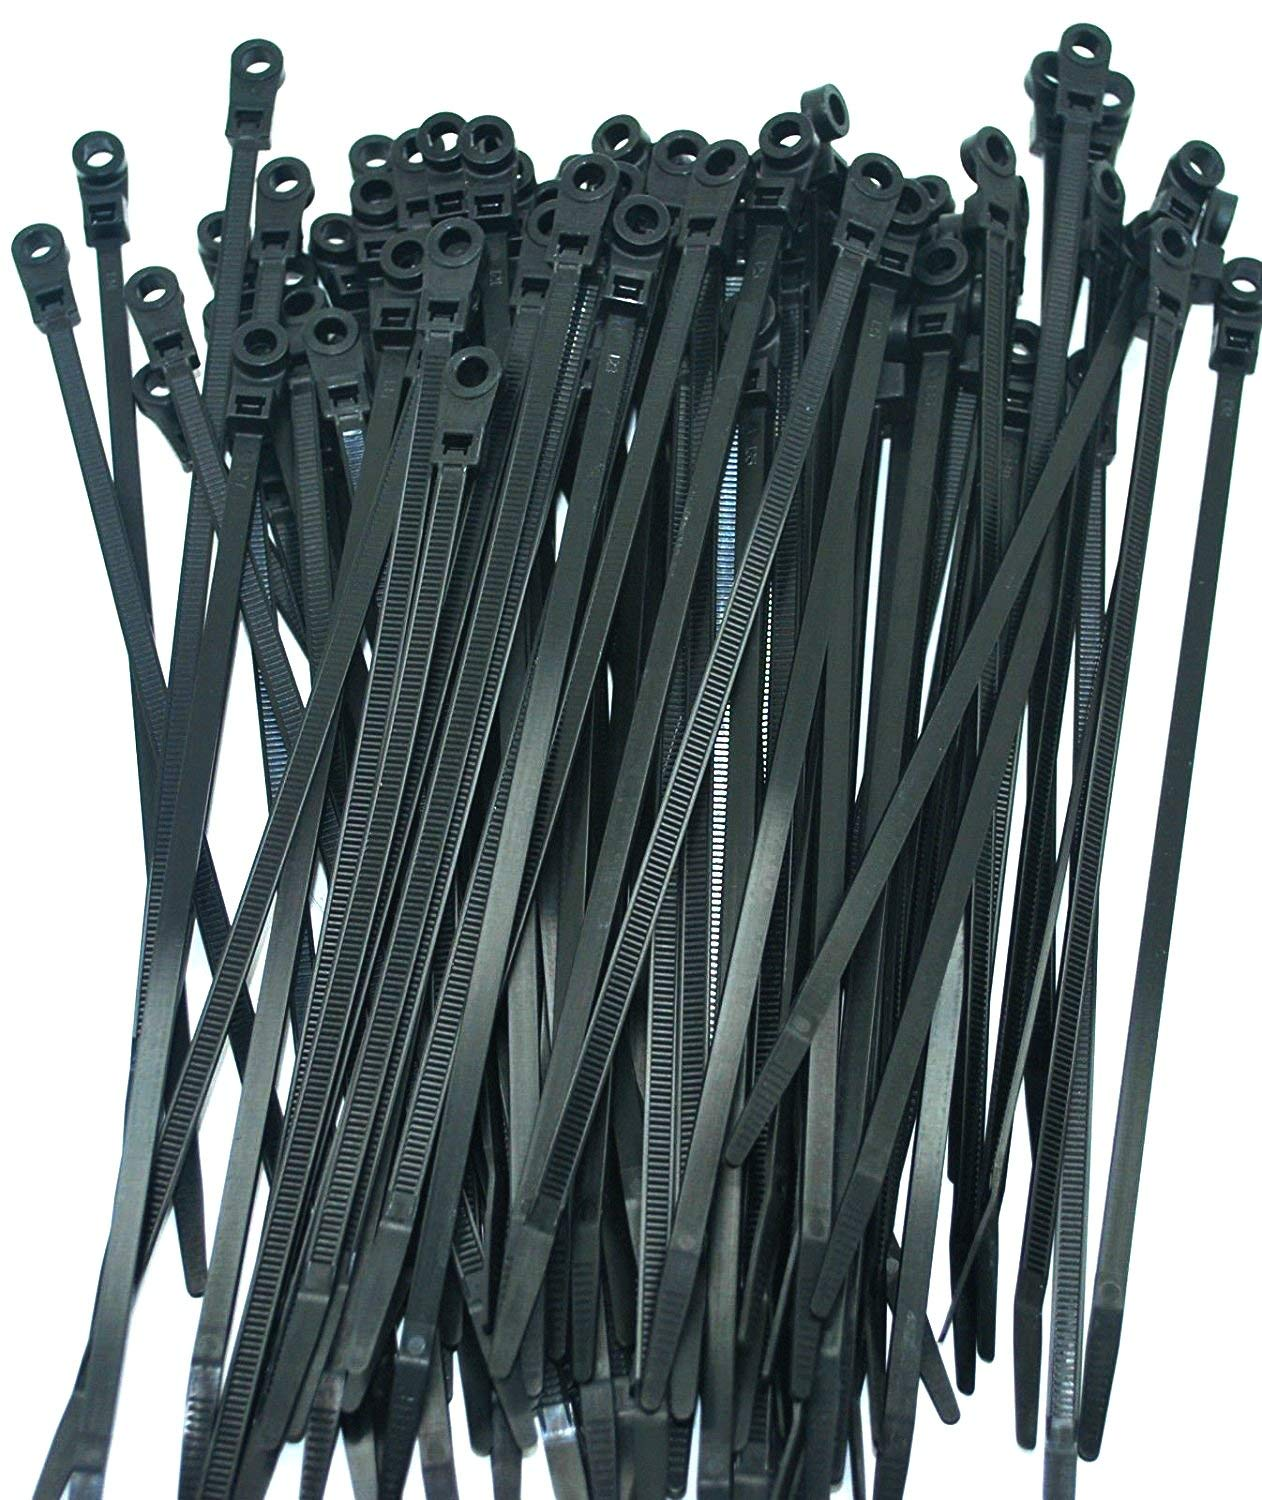 100 PERFECT VISION BLACK MOUNTING HOLE CABLE TIE ZIP WRAPS 7 SATELLITE//CABLE CT7BLK-MH CECOMINOD036755 Original Version